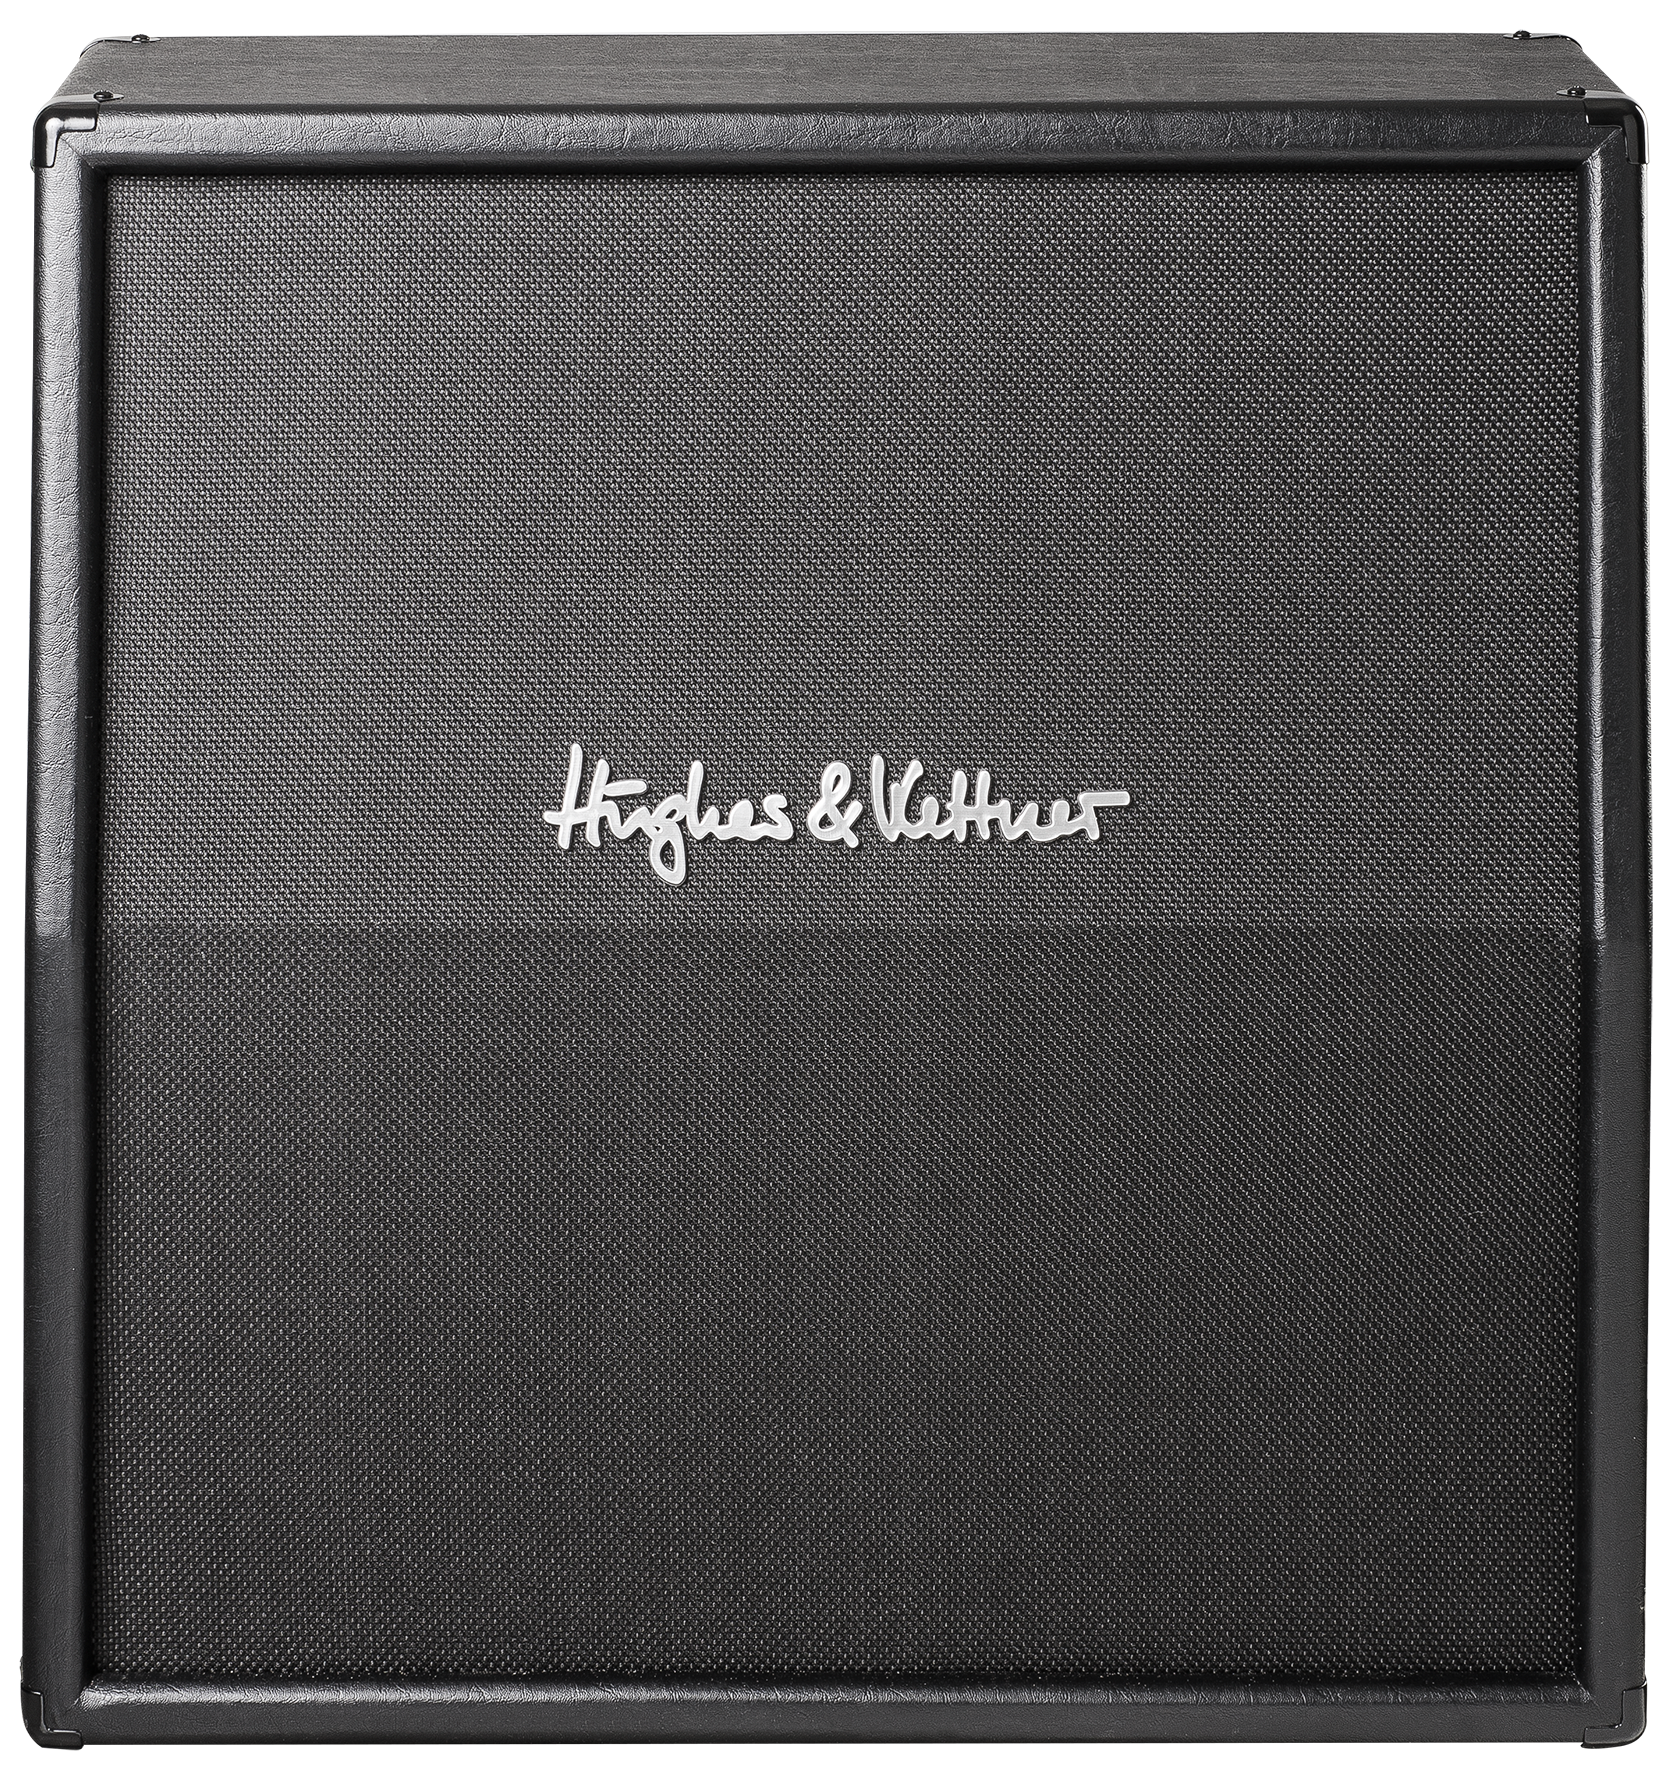 Our Products Hughes Kettner Is It Ok To Put A Solid State Pedal Through Valve Amp Geekchat Tc 412 A60 Cabinet